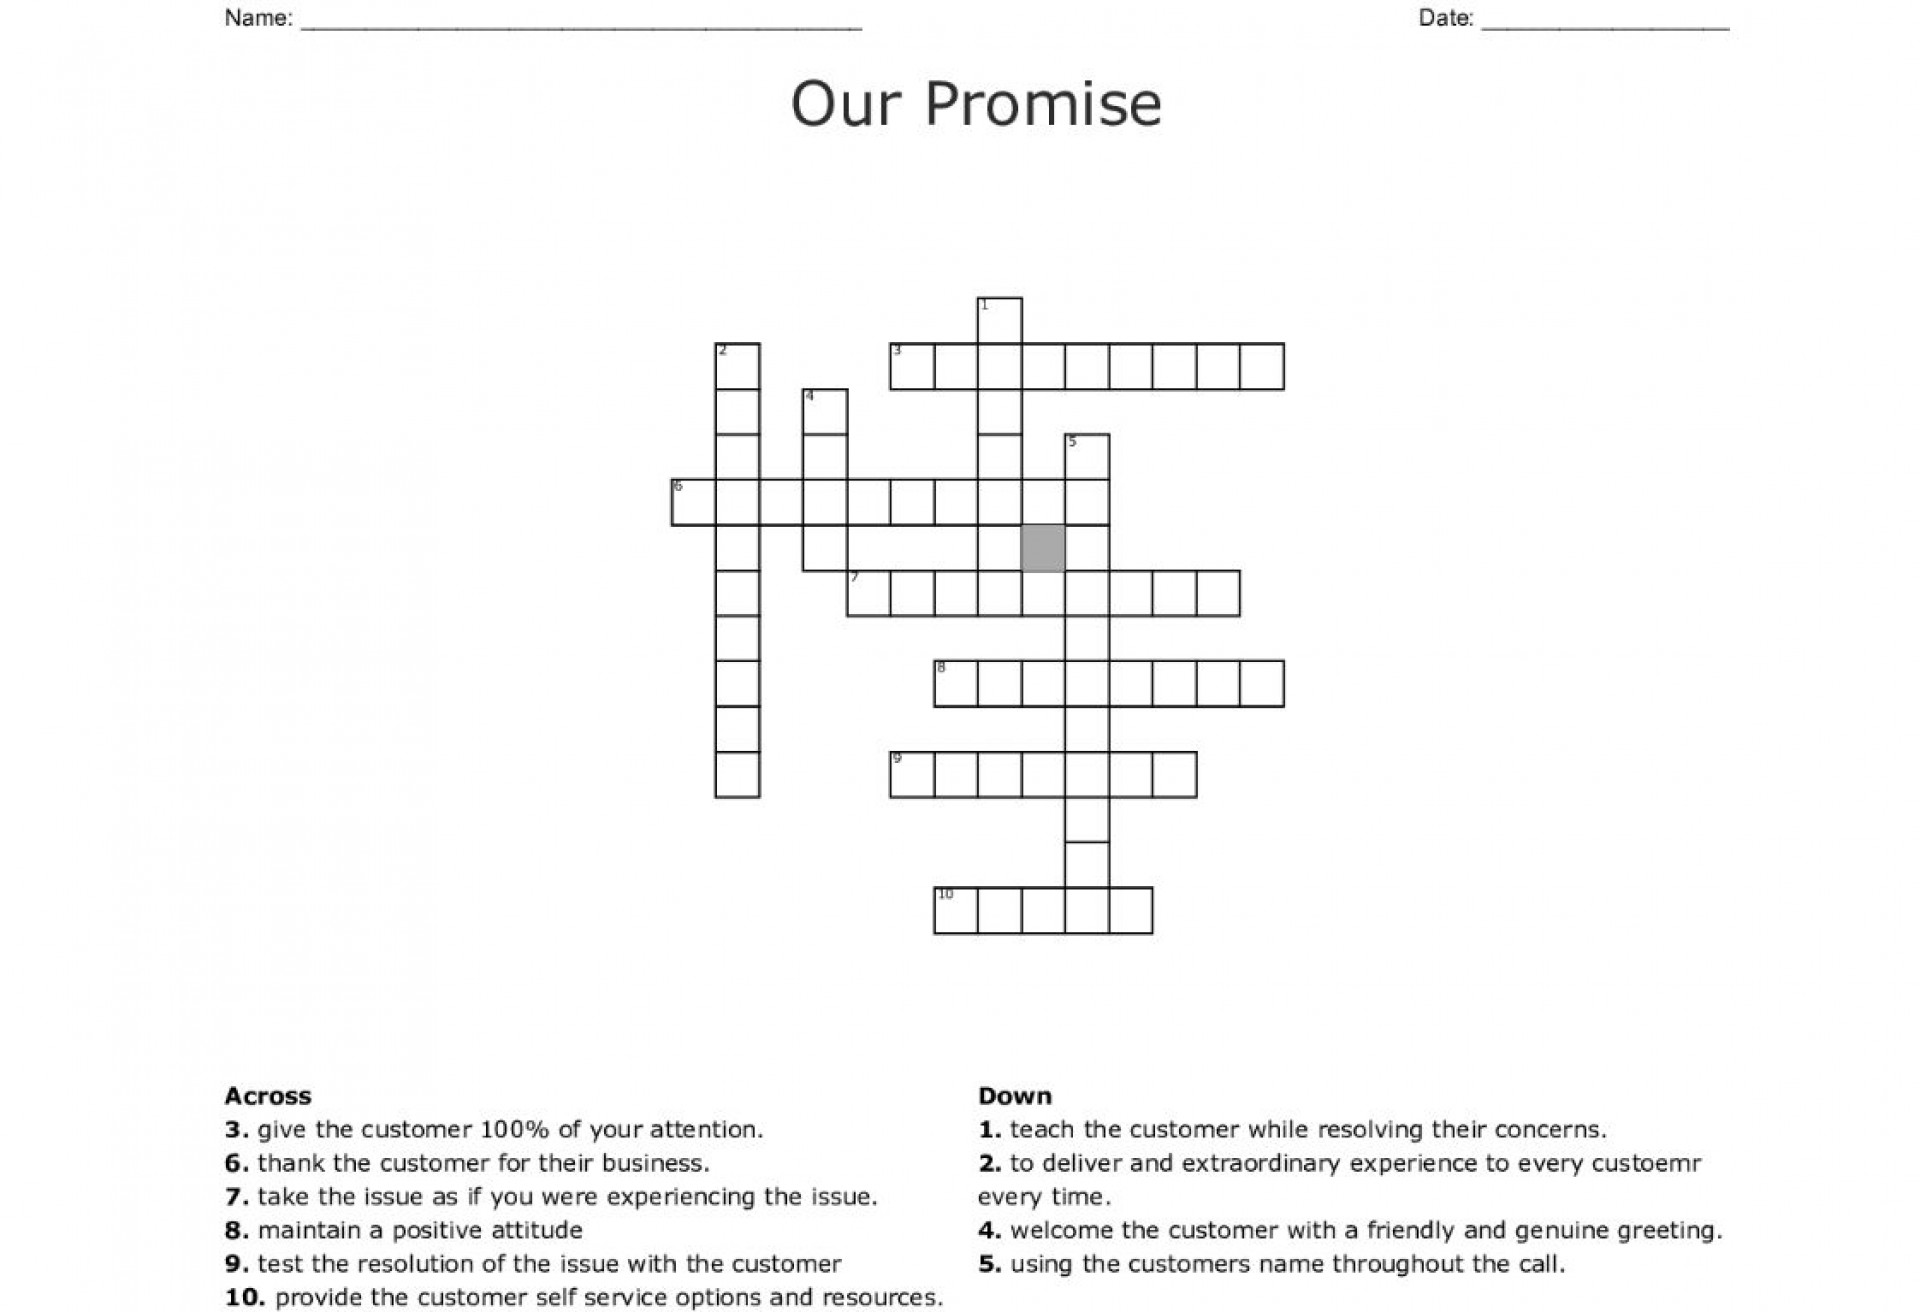 002 Marvelou Promise Crossword Clue Highest Clarity  Go Back On A 6 Letter 3 Of Marriage 91920